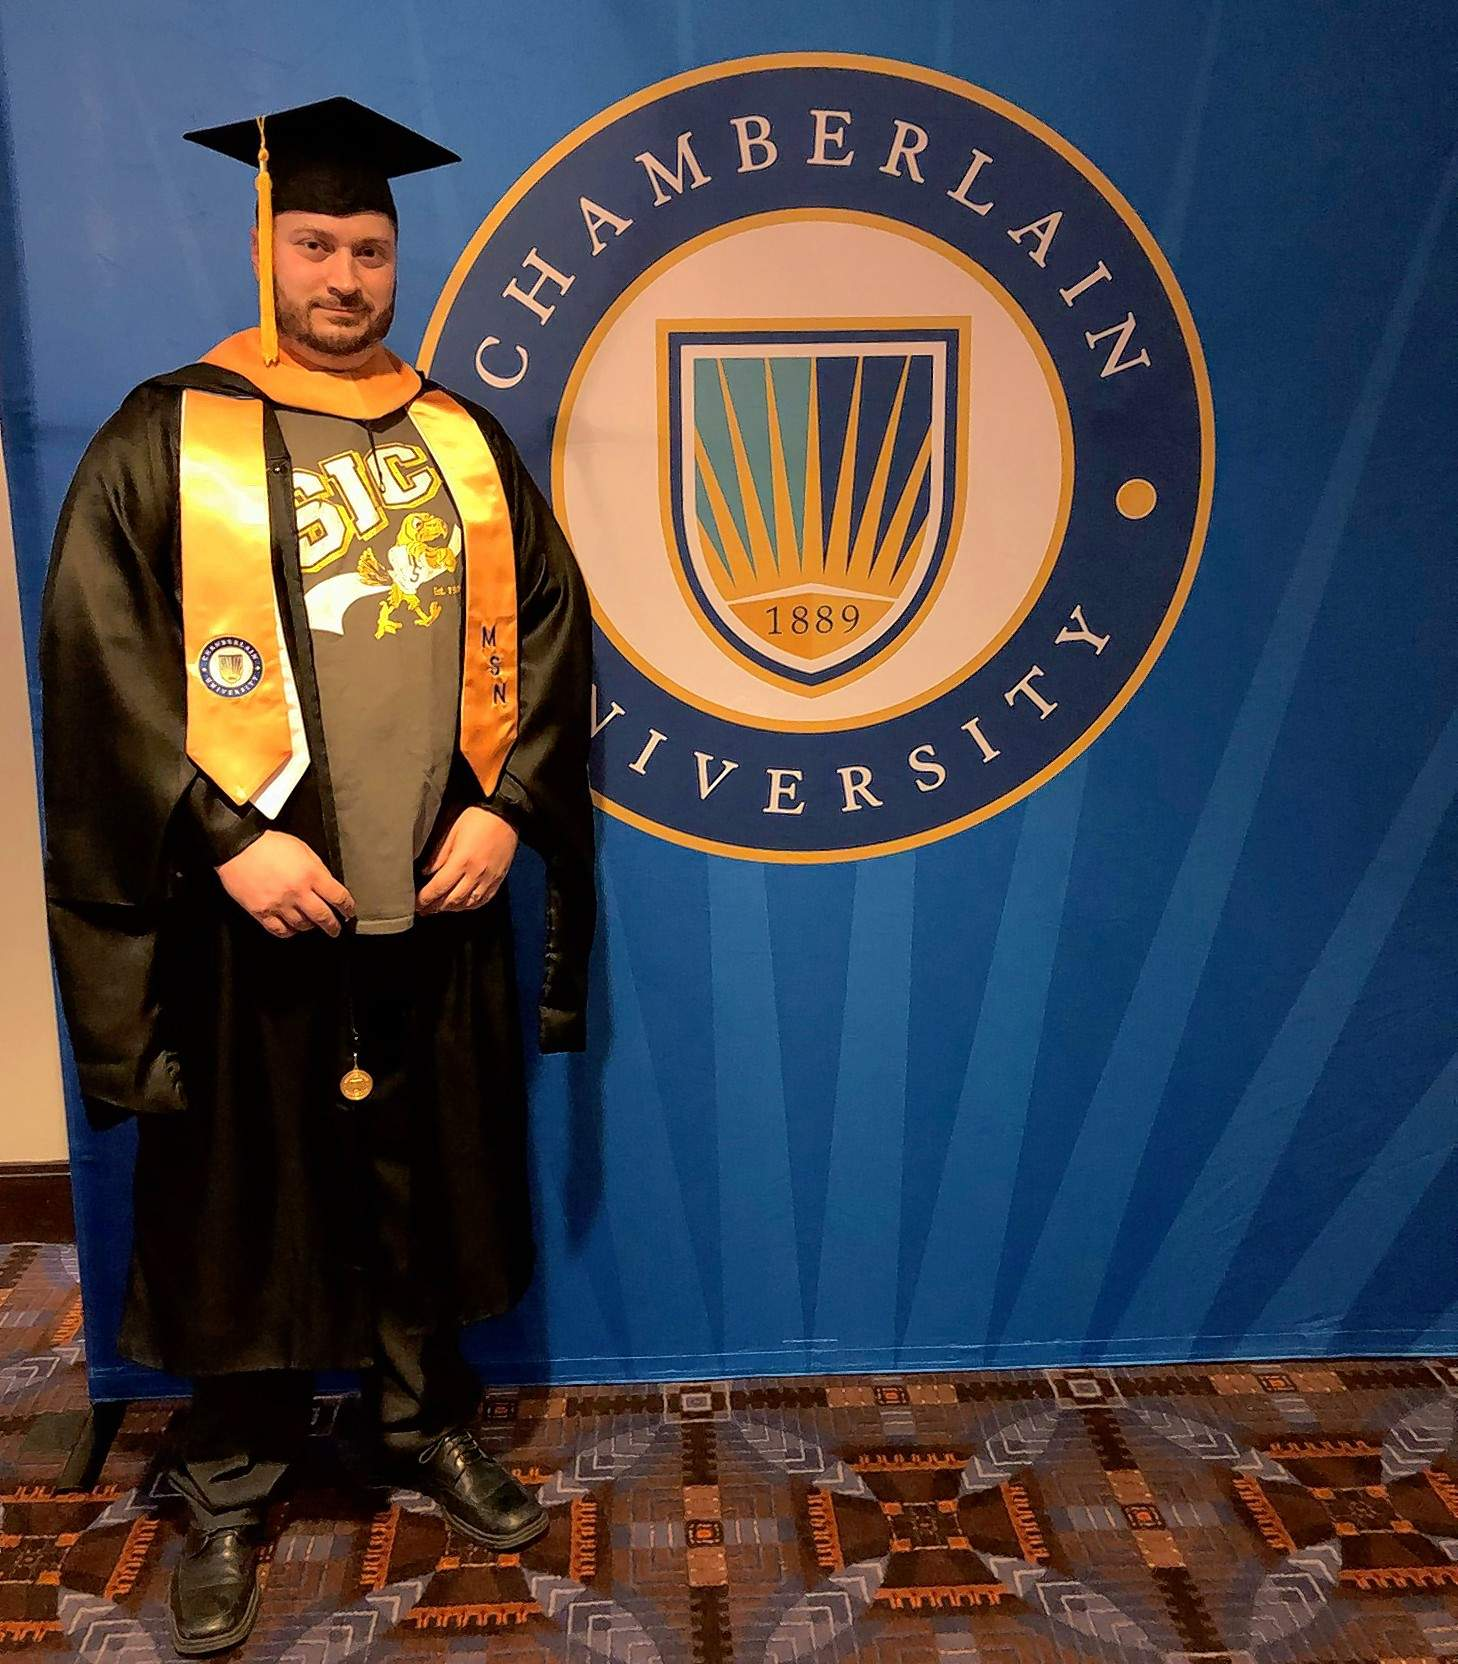 SIC MEDIA SERVICESJosh Richardson of Carrier Mills earned his Master of Science in Nursing - Family Nurse Practitioner from Chamberlain University March 18.